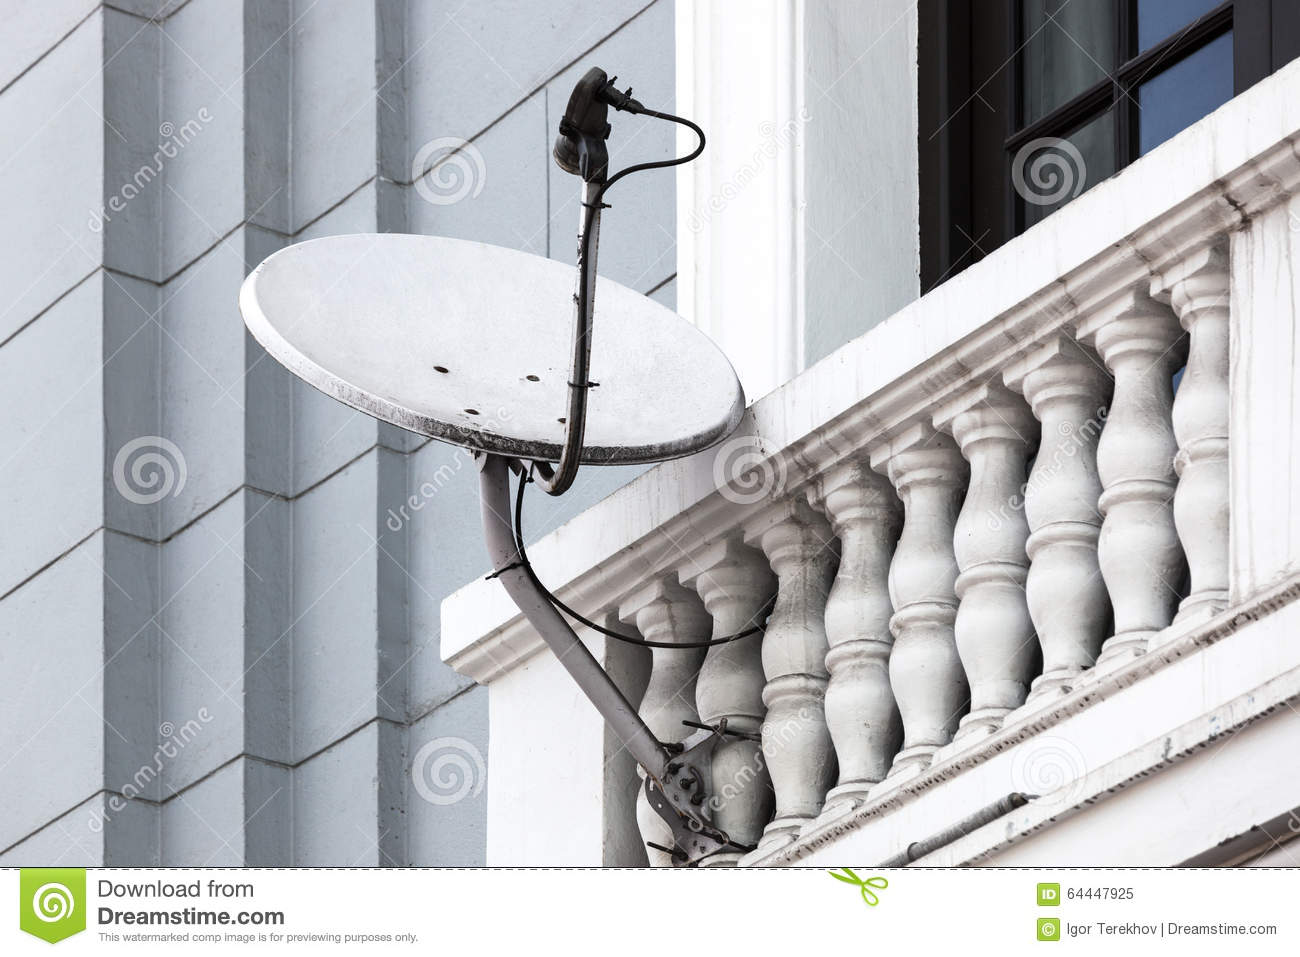 satellite dish on the balcony stock image image of house gray 64447925. Black Bedroom Furniture Sets. Home Design Ideas